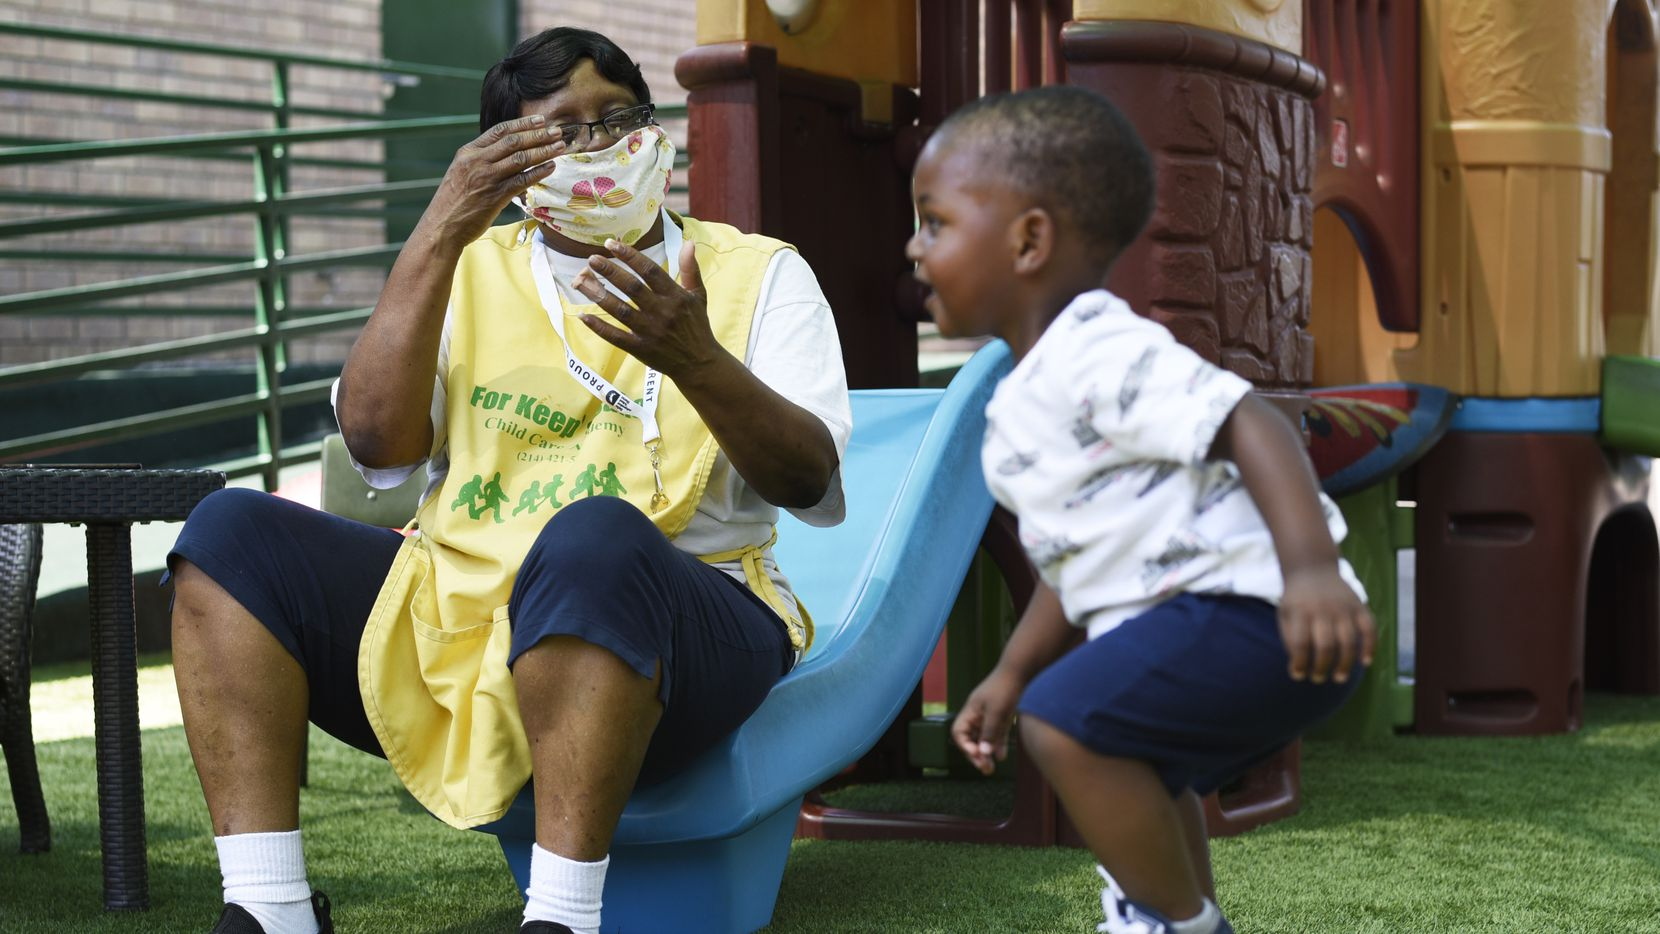 Jeri Lowe, left, a 2-year-old teacher, sings a song as a young boy dances by jumping up and down to her words, during his stay at For Keep's Sake Child Care Academy in Dallas, Tuesday May 19, 2020. Ben Torres/Special Contributor